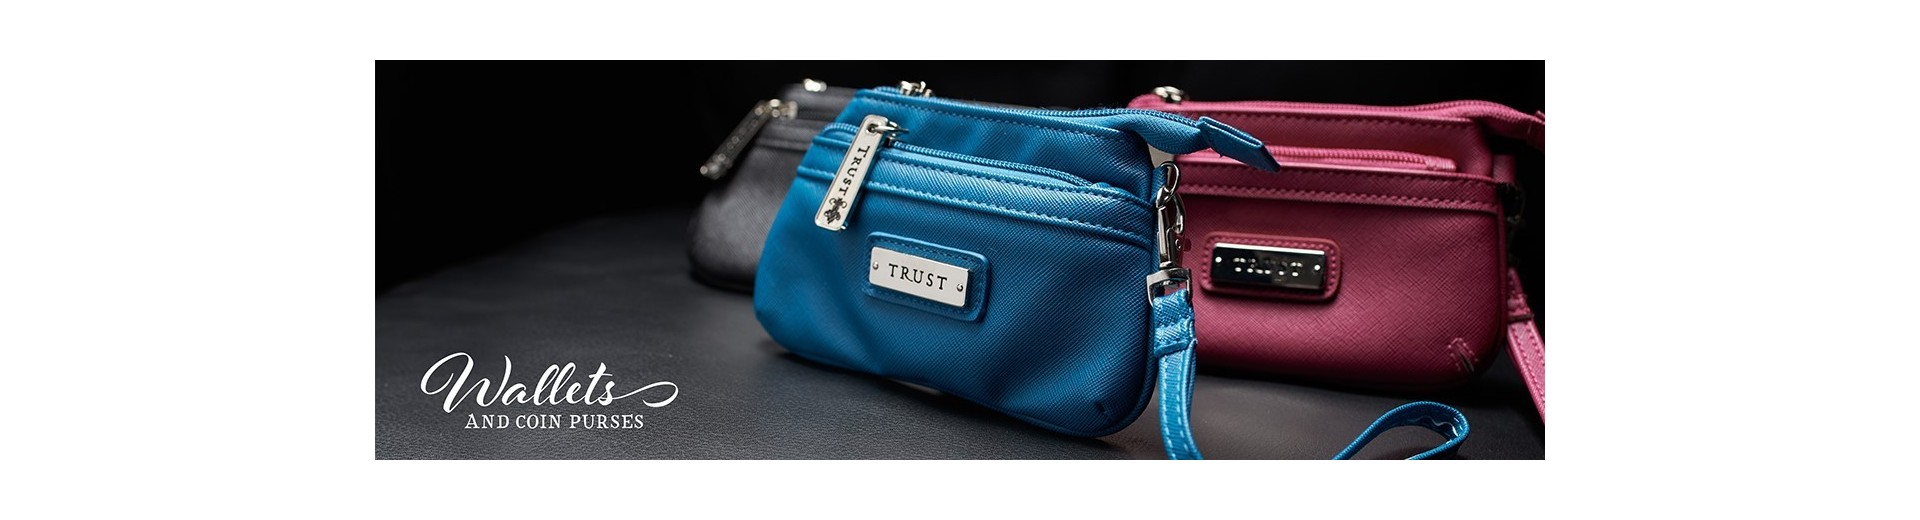 Women's Totes, Purses & Others